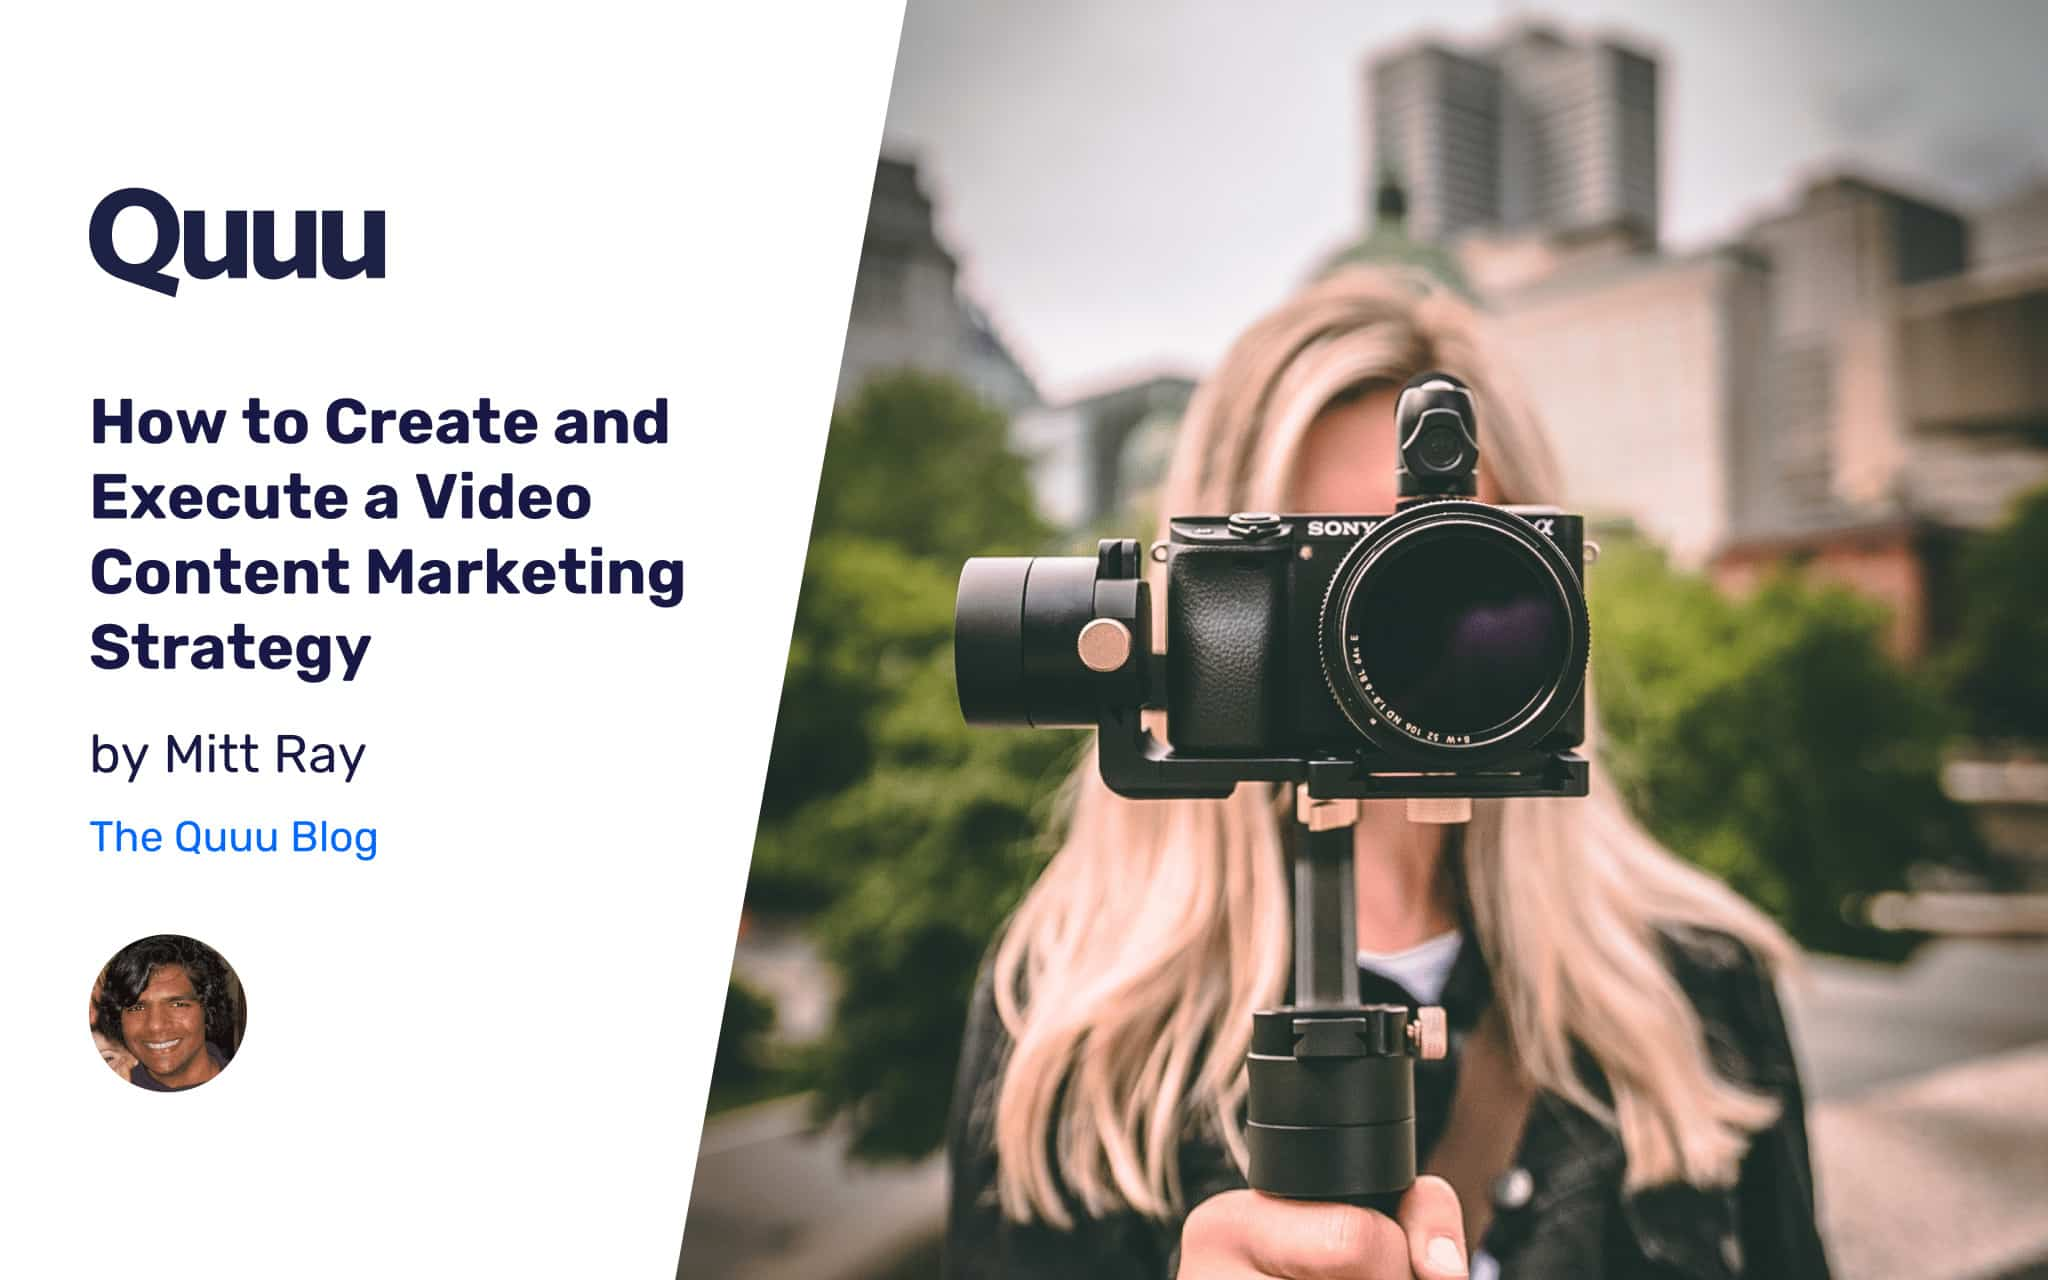 How to Create and Execute a Video Content Marketing Strategy